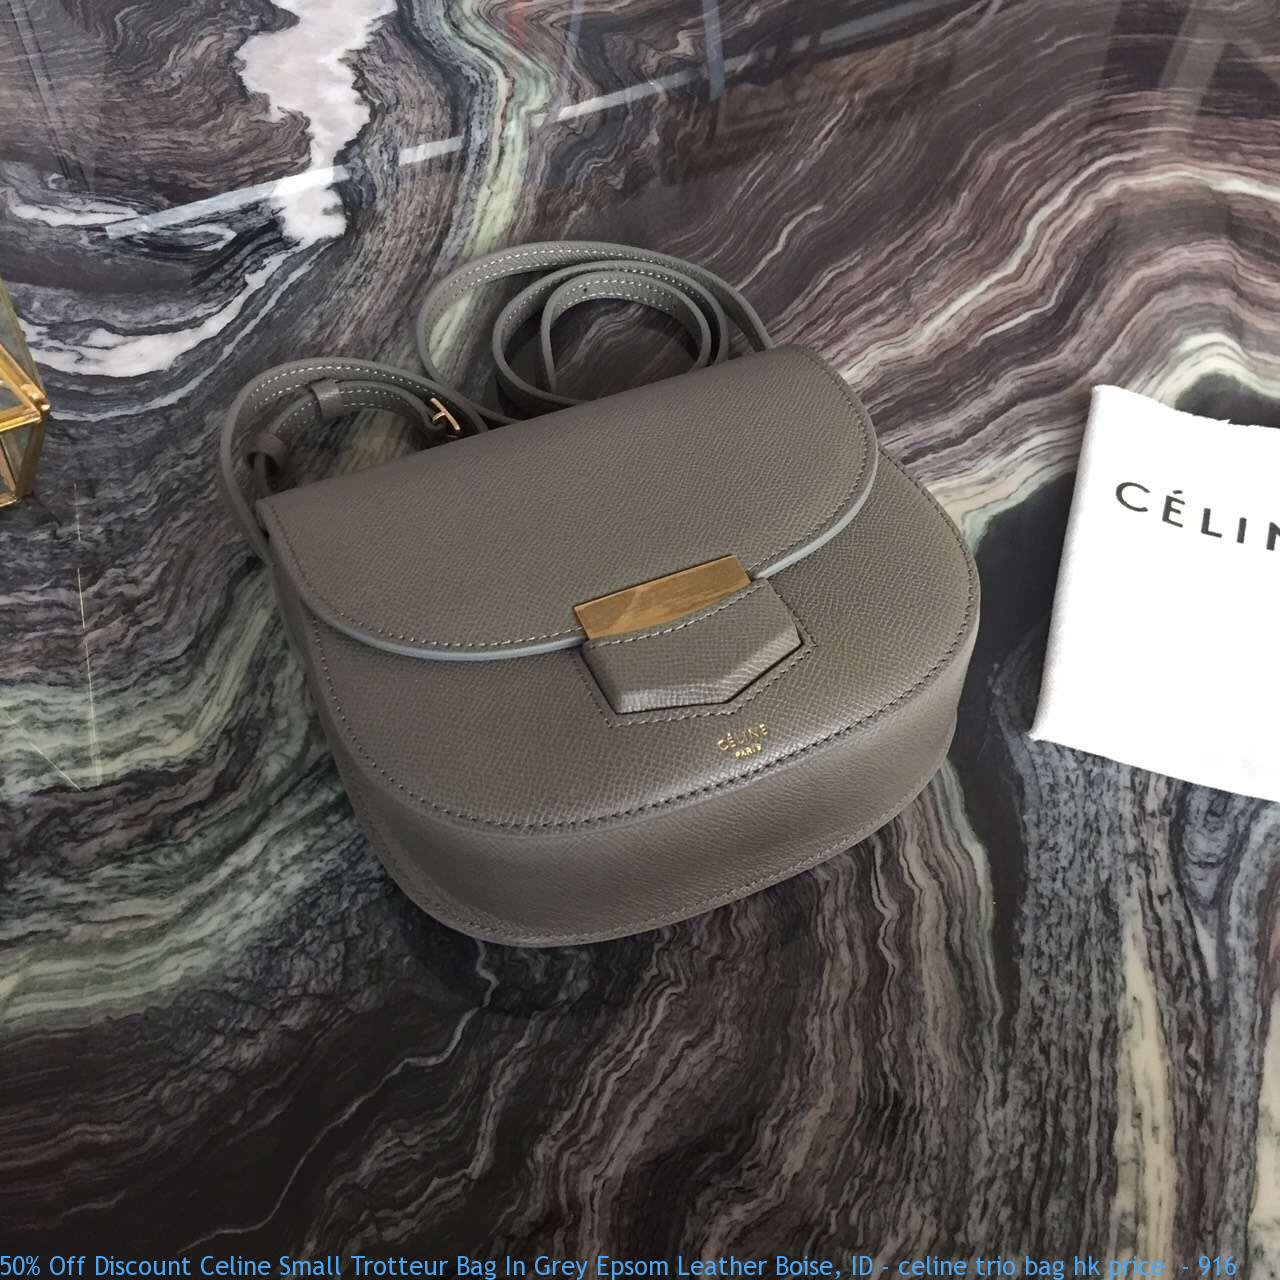 127e200281 50% Off Discount Celine Small Trotteur Bag In Grey Epsom Leather ...